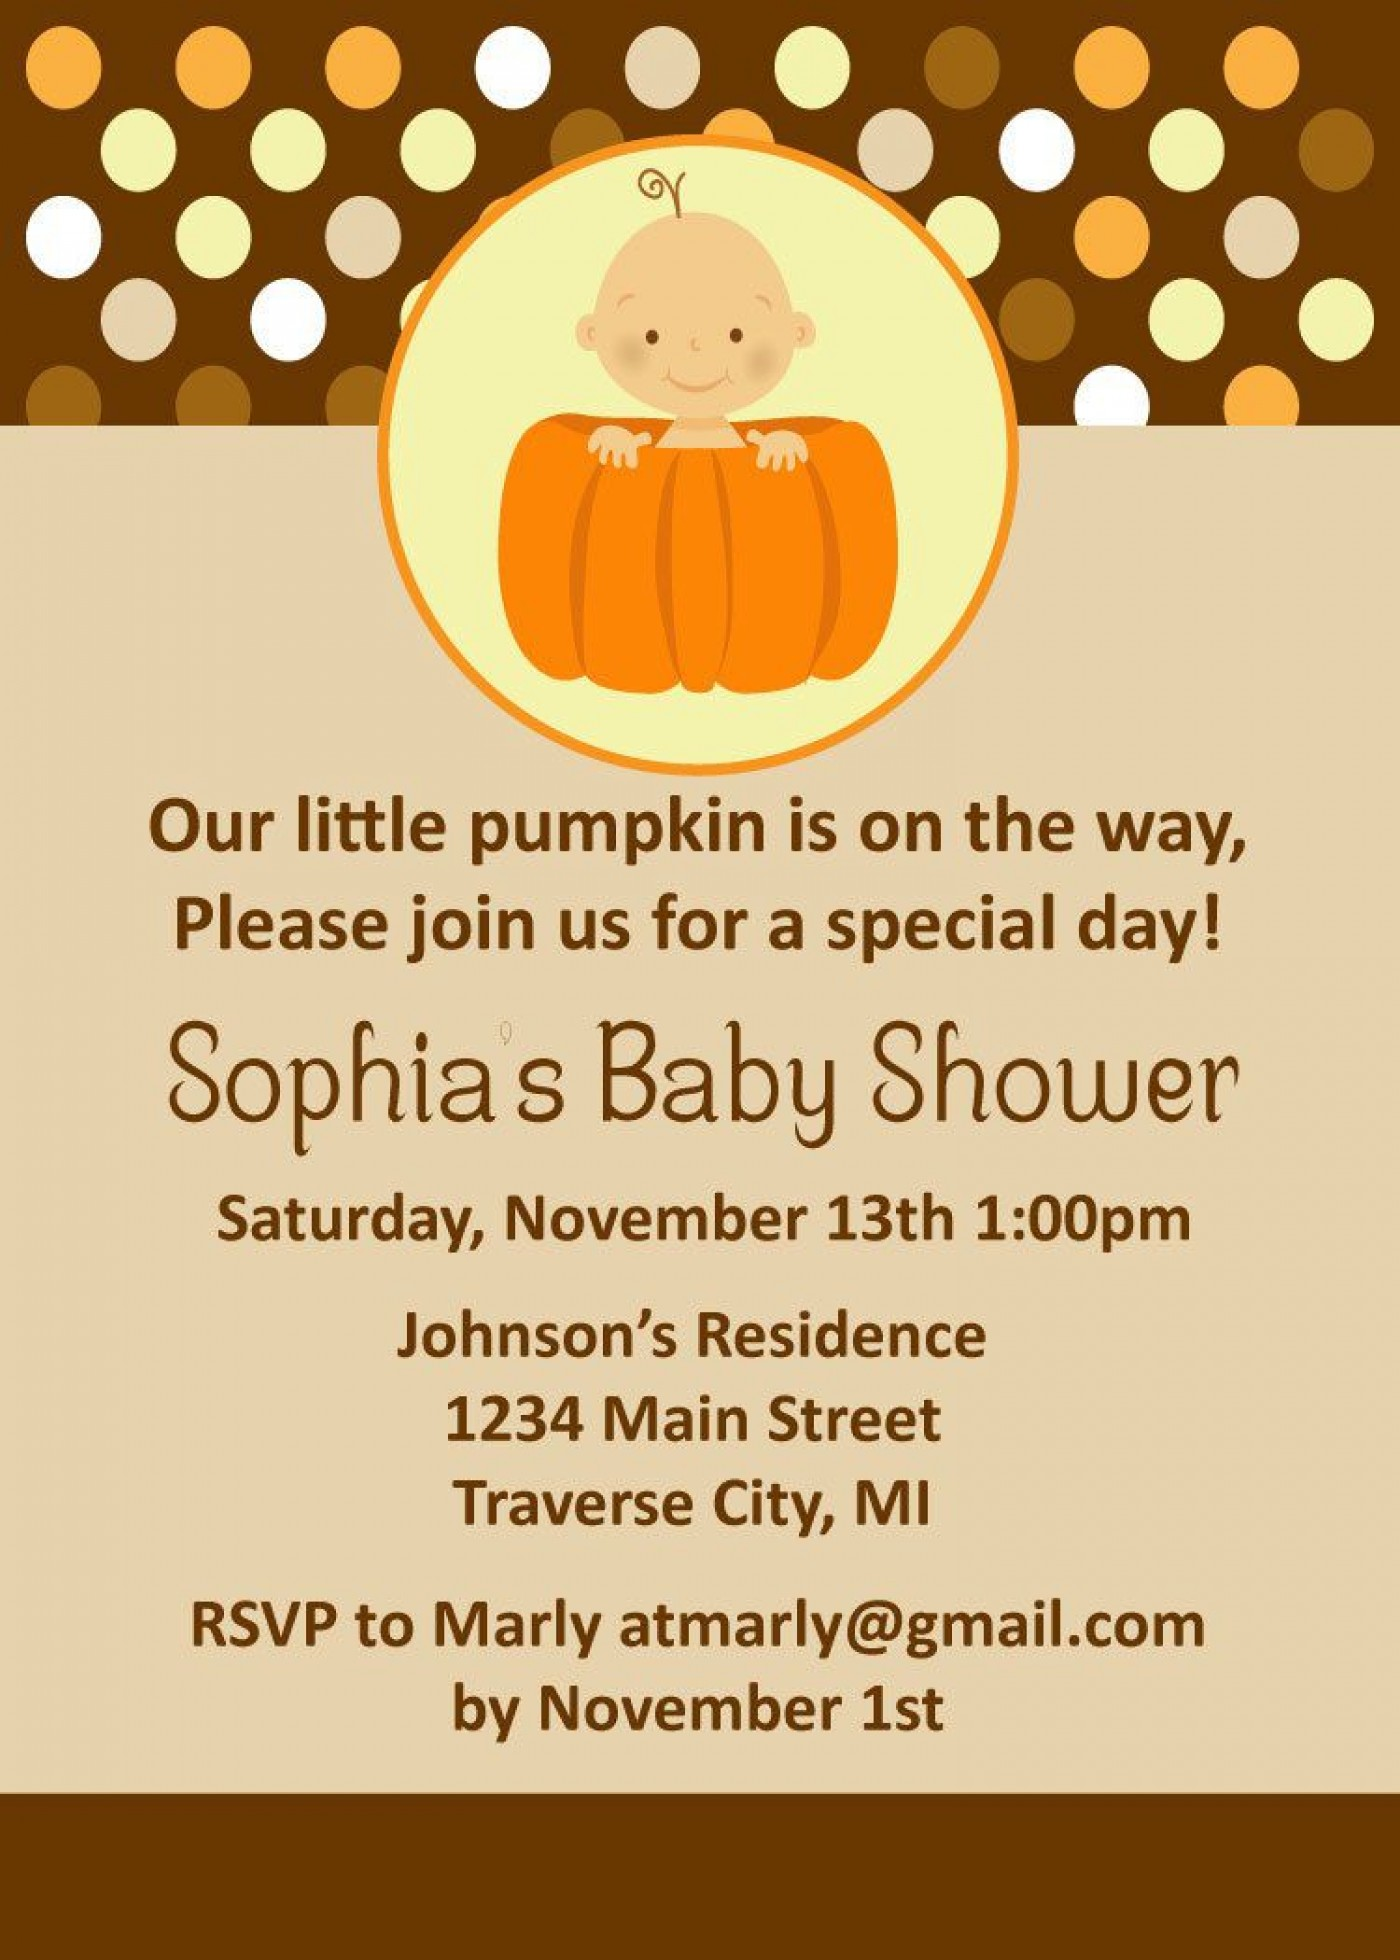 008 Striking Baby Shower Invitation Girl Pumpkin Image  Little1400